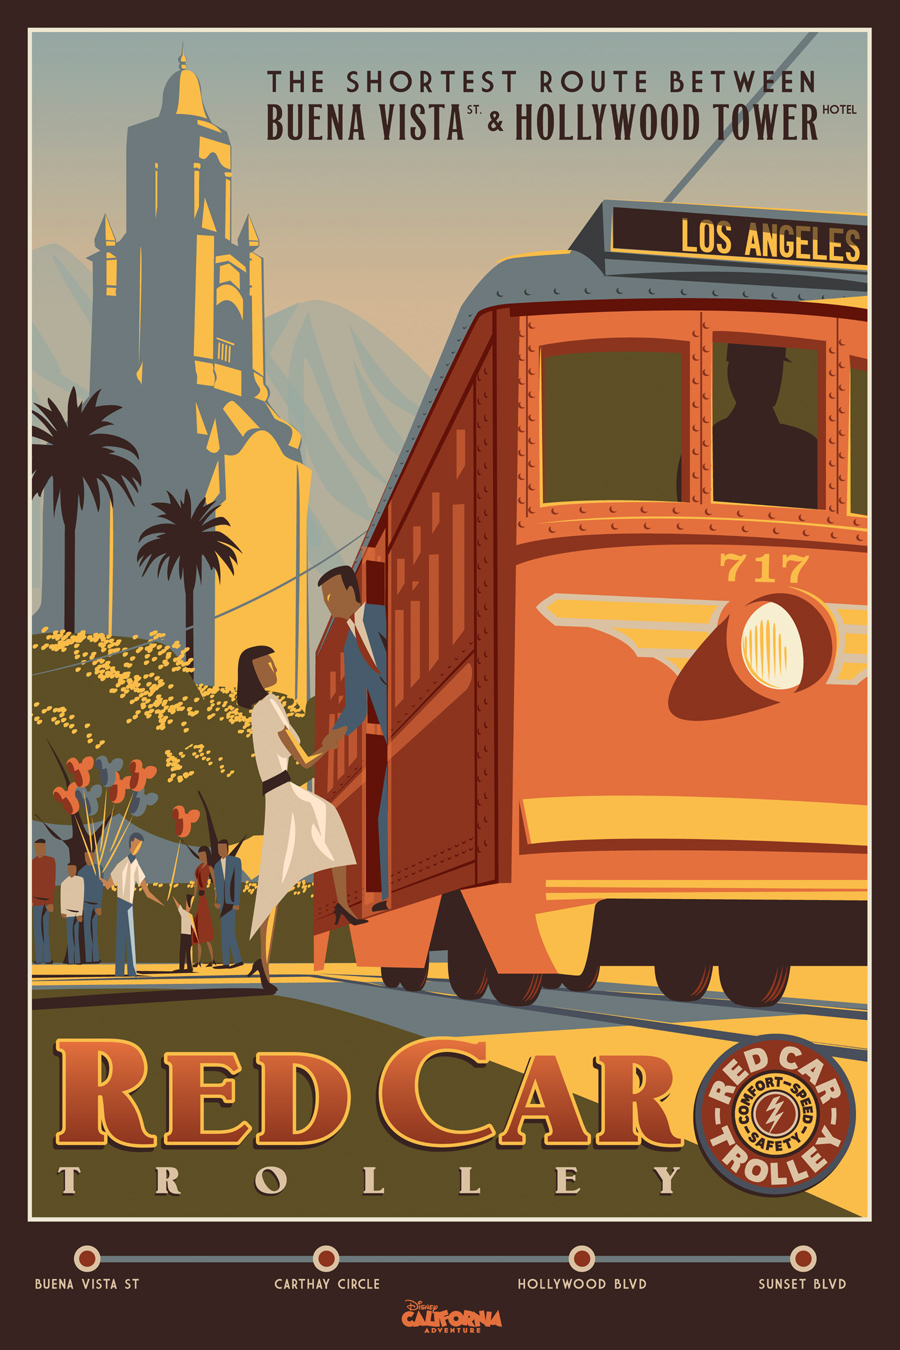 The Disney Parks Blog has posted three new attraction posters which will be coming soon to DCA. I love the classic Disneyland Attraction Posters and these have that same great […]